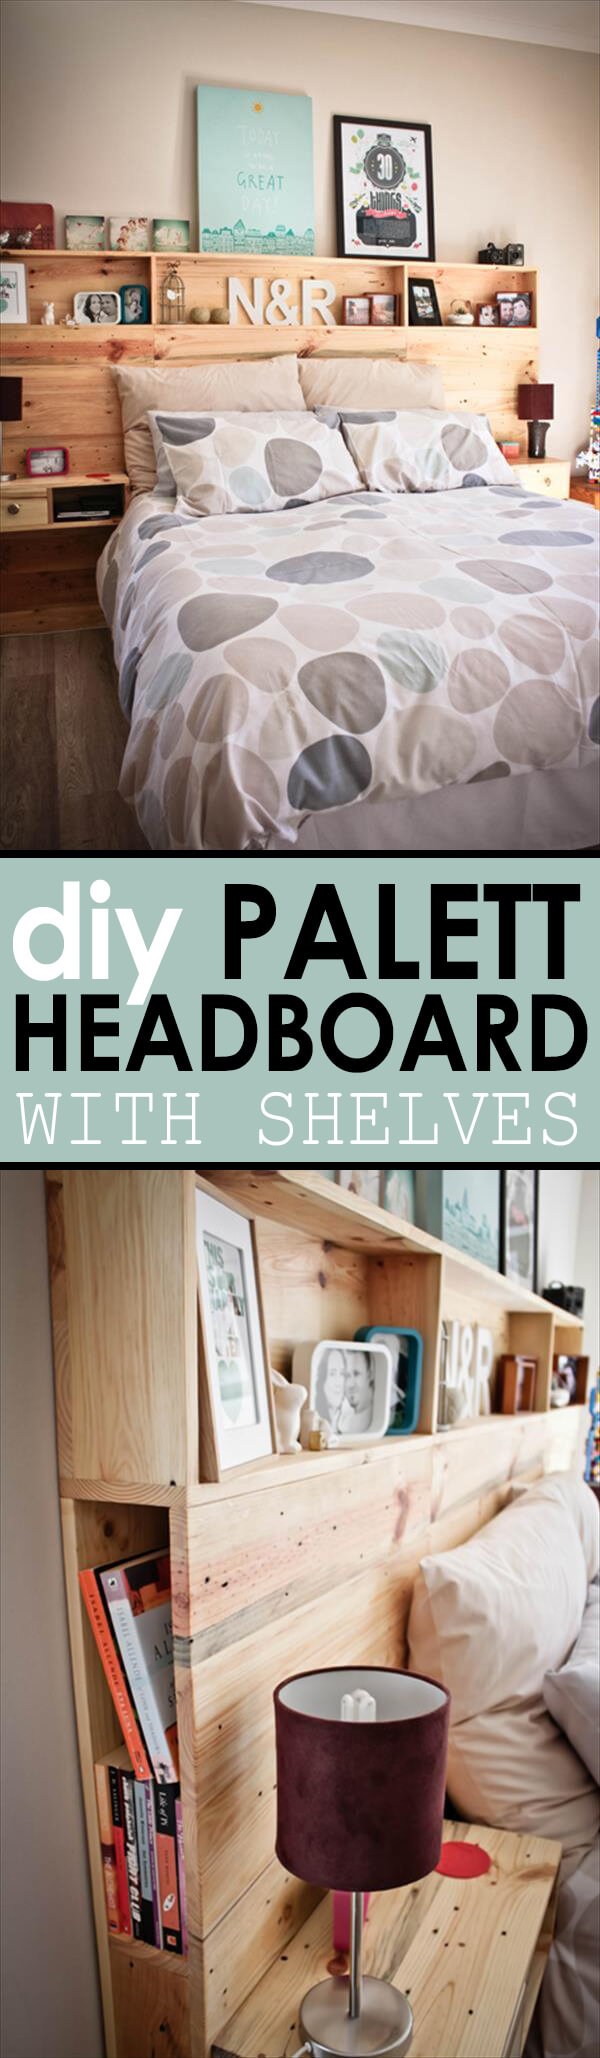 9. Shelfing Smart With Pallets